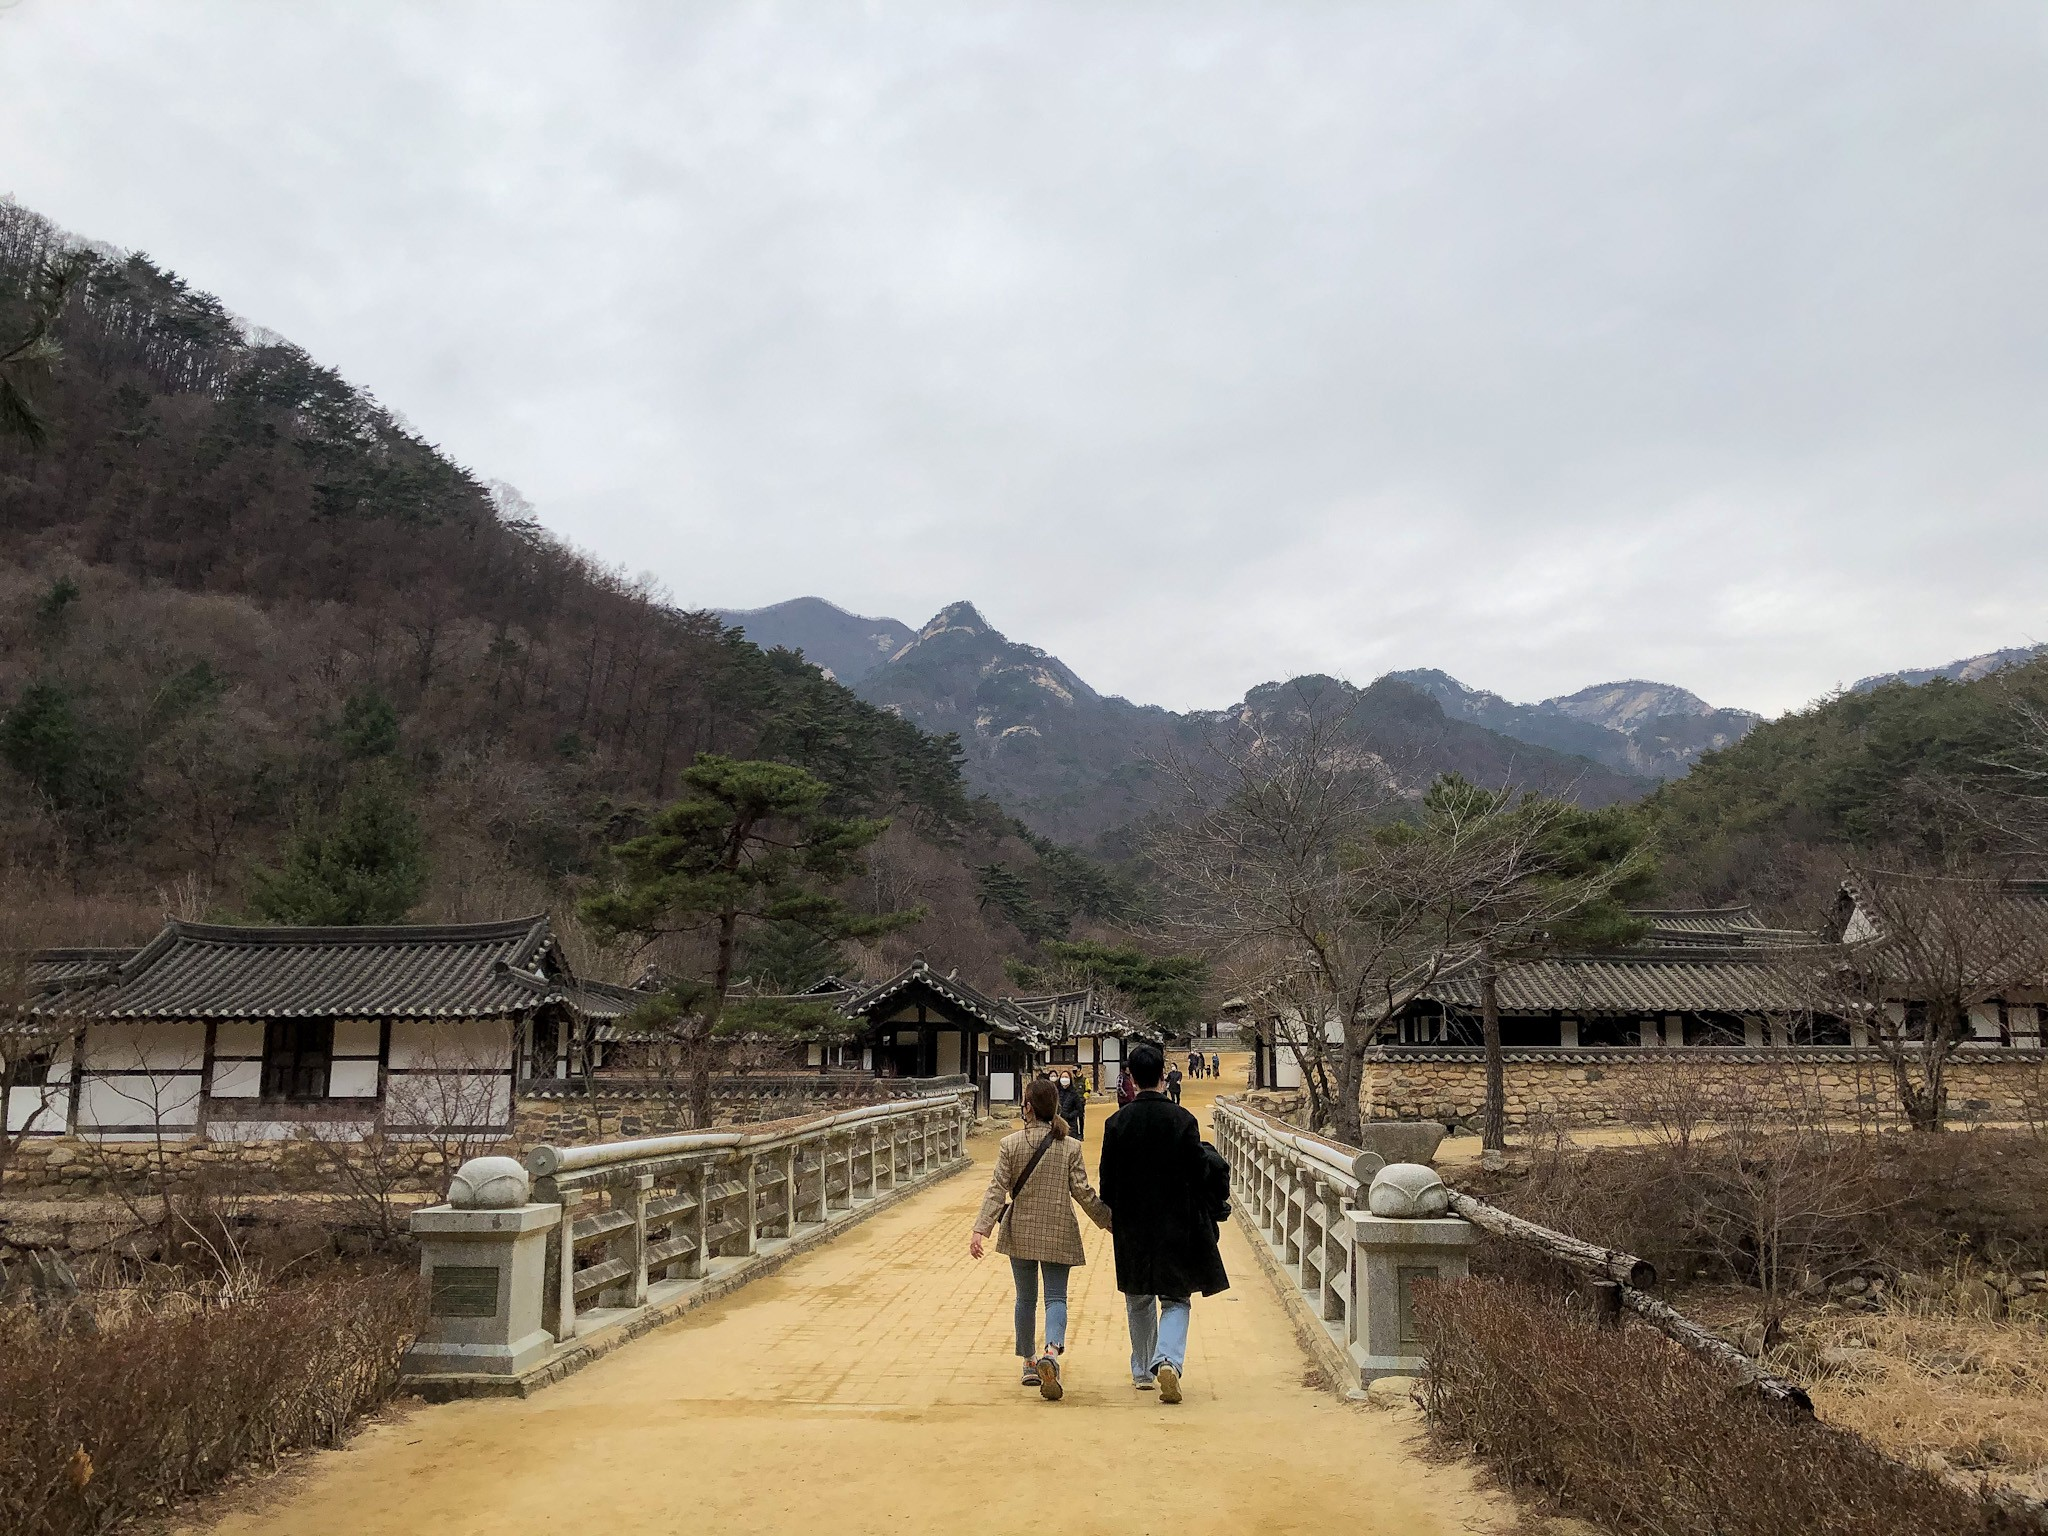 Mungyeong Saejae stone bridge that leads hikers through a traditional Korean village with the mountains of Korea in the distance.